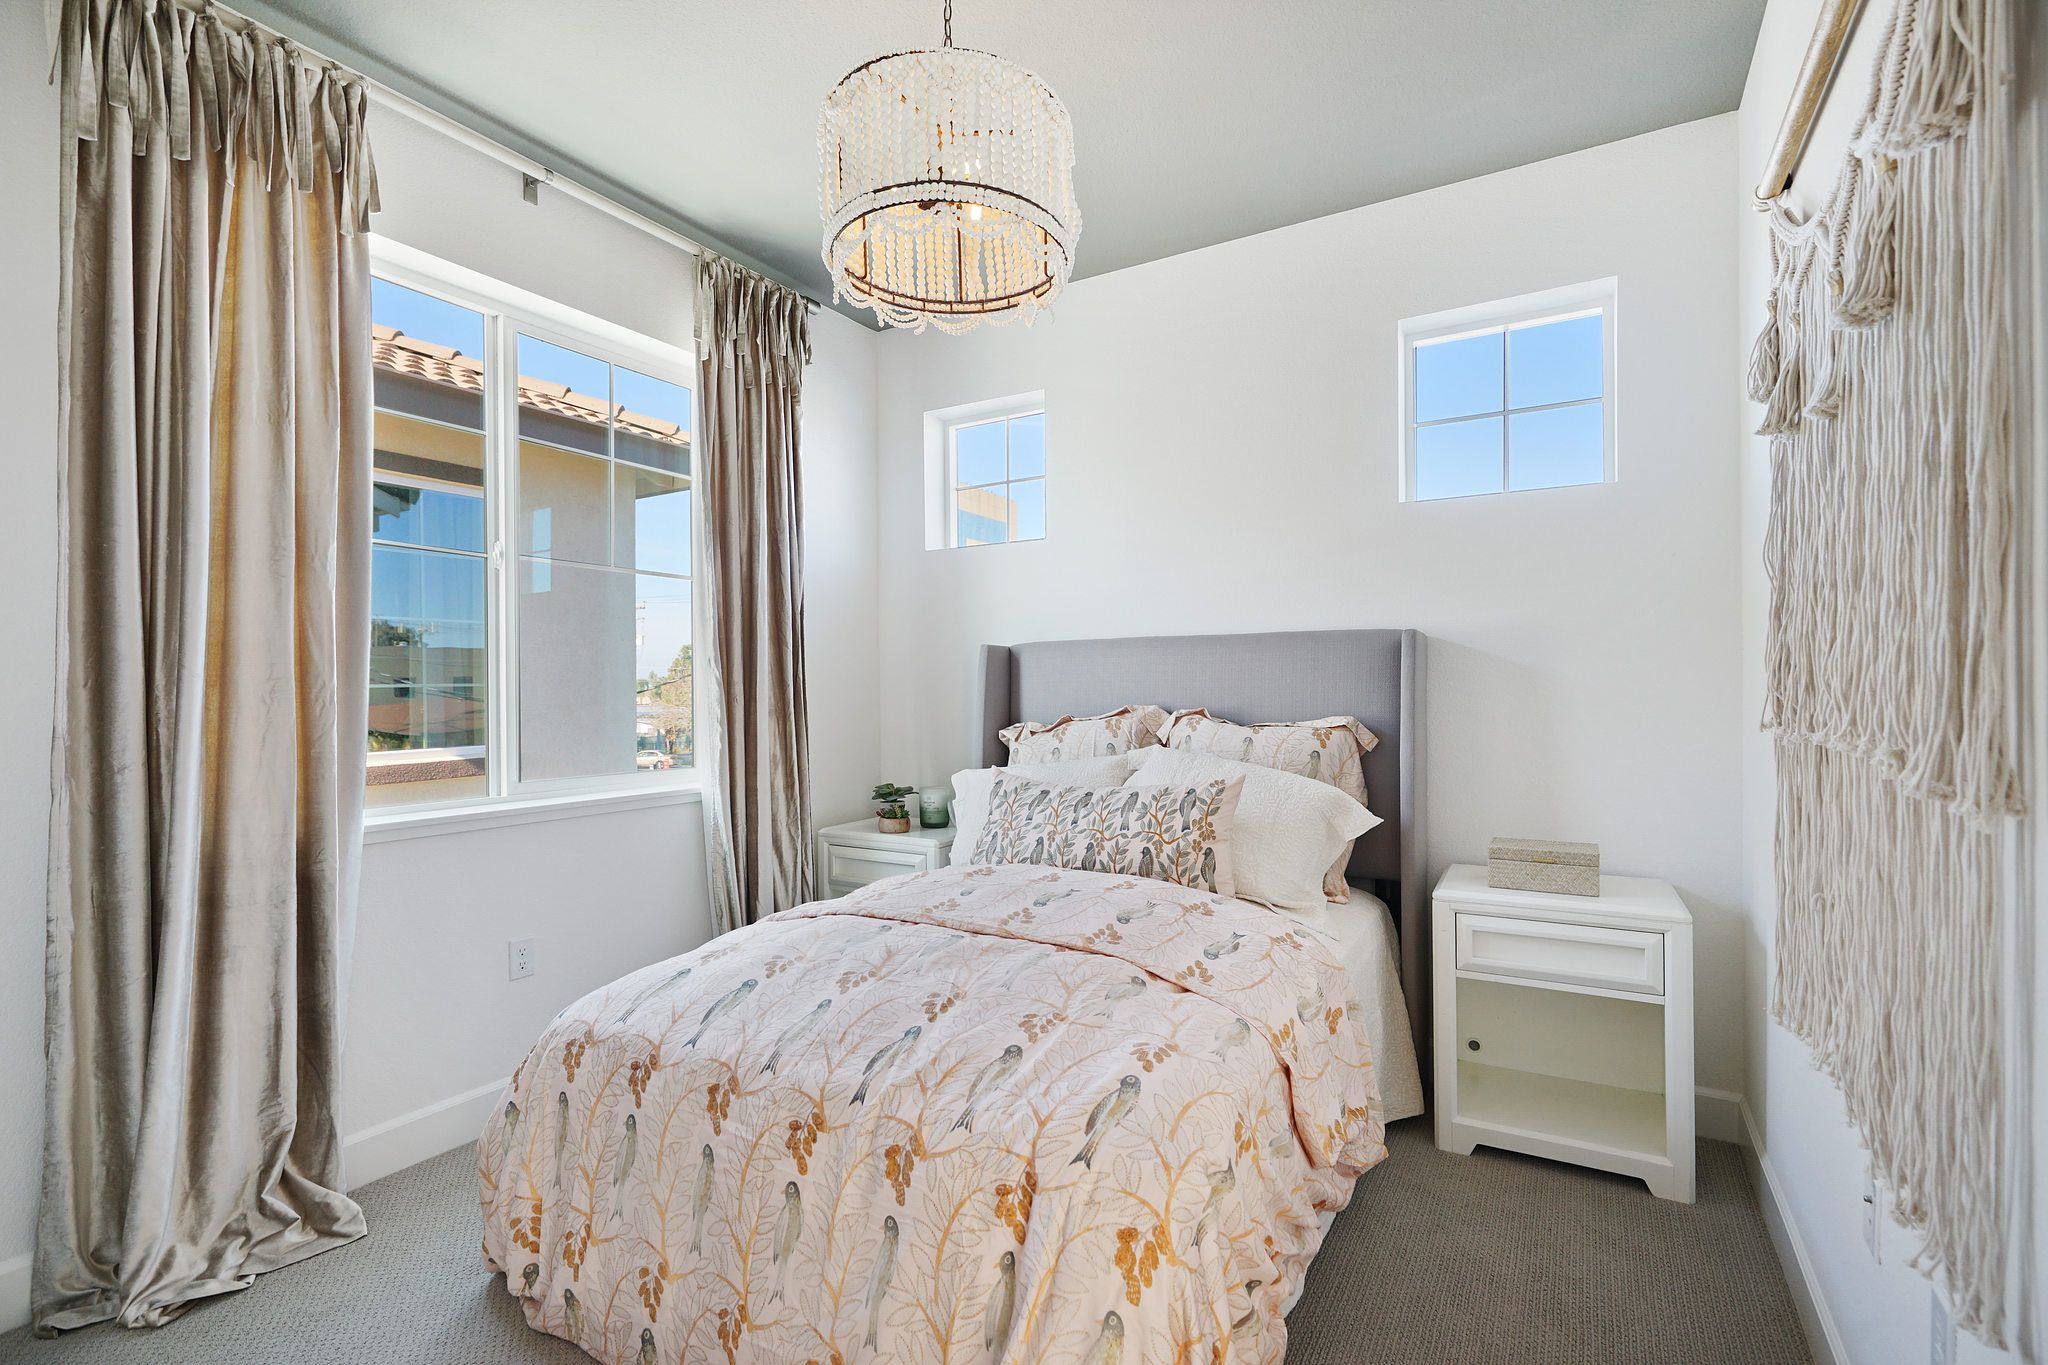 Bedroom featured in the Buckley By Discovery Homes in Oakland-Alameda, CA